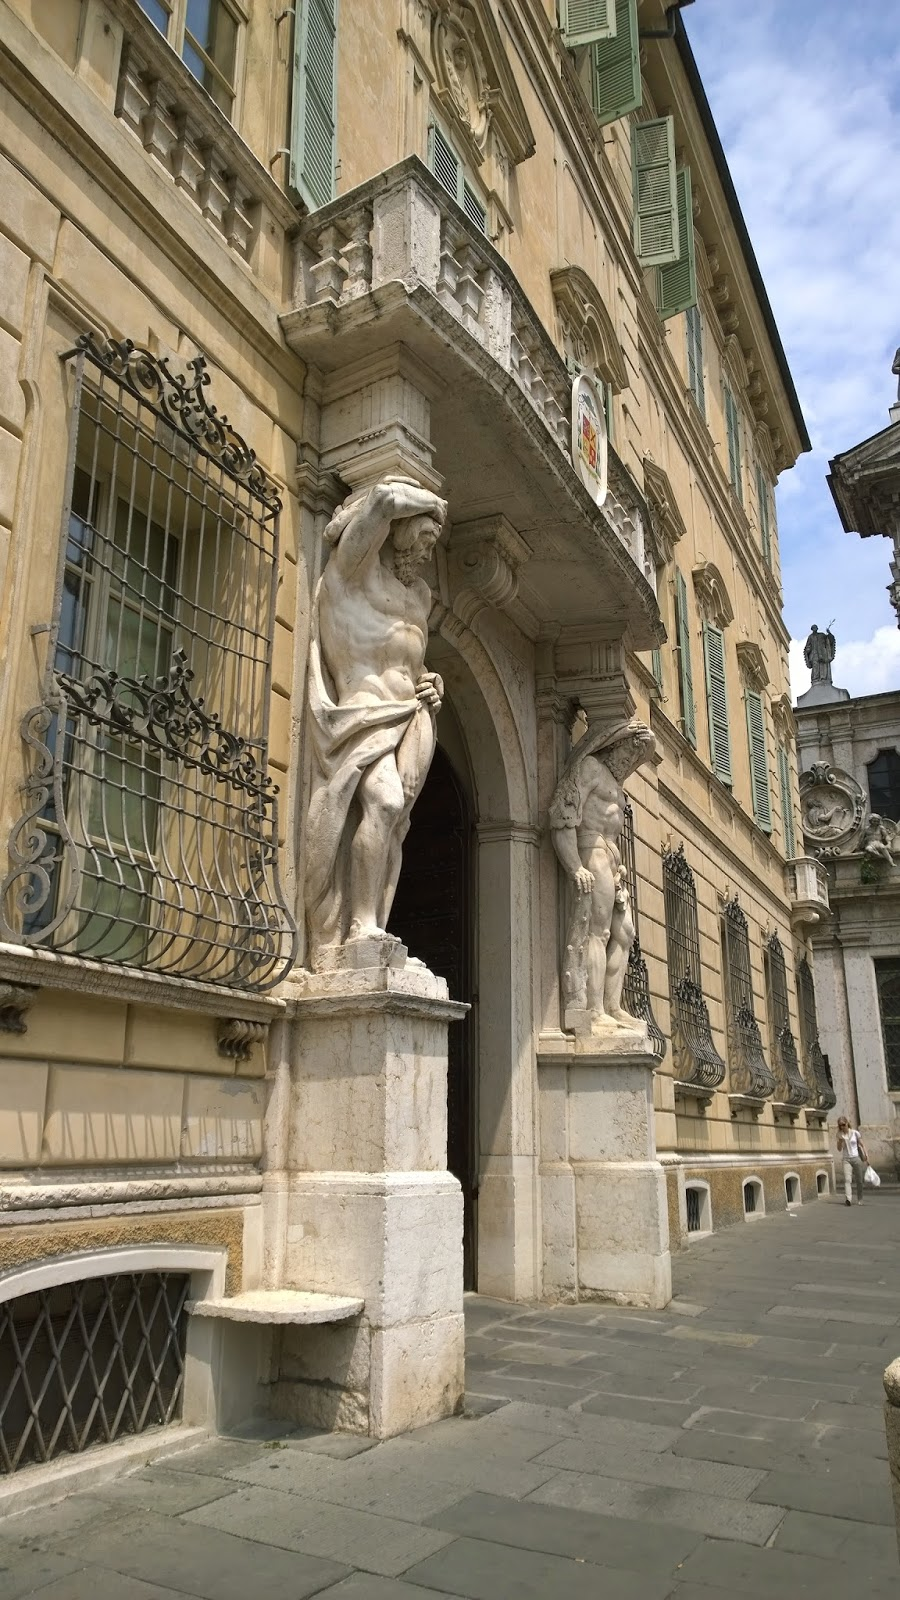 Building entrance at Piazza Sordello